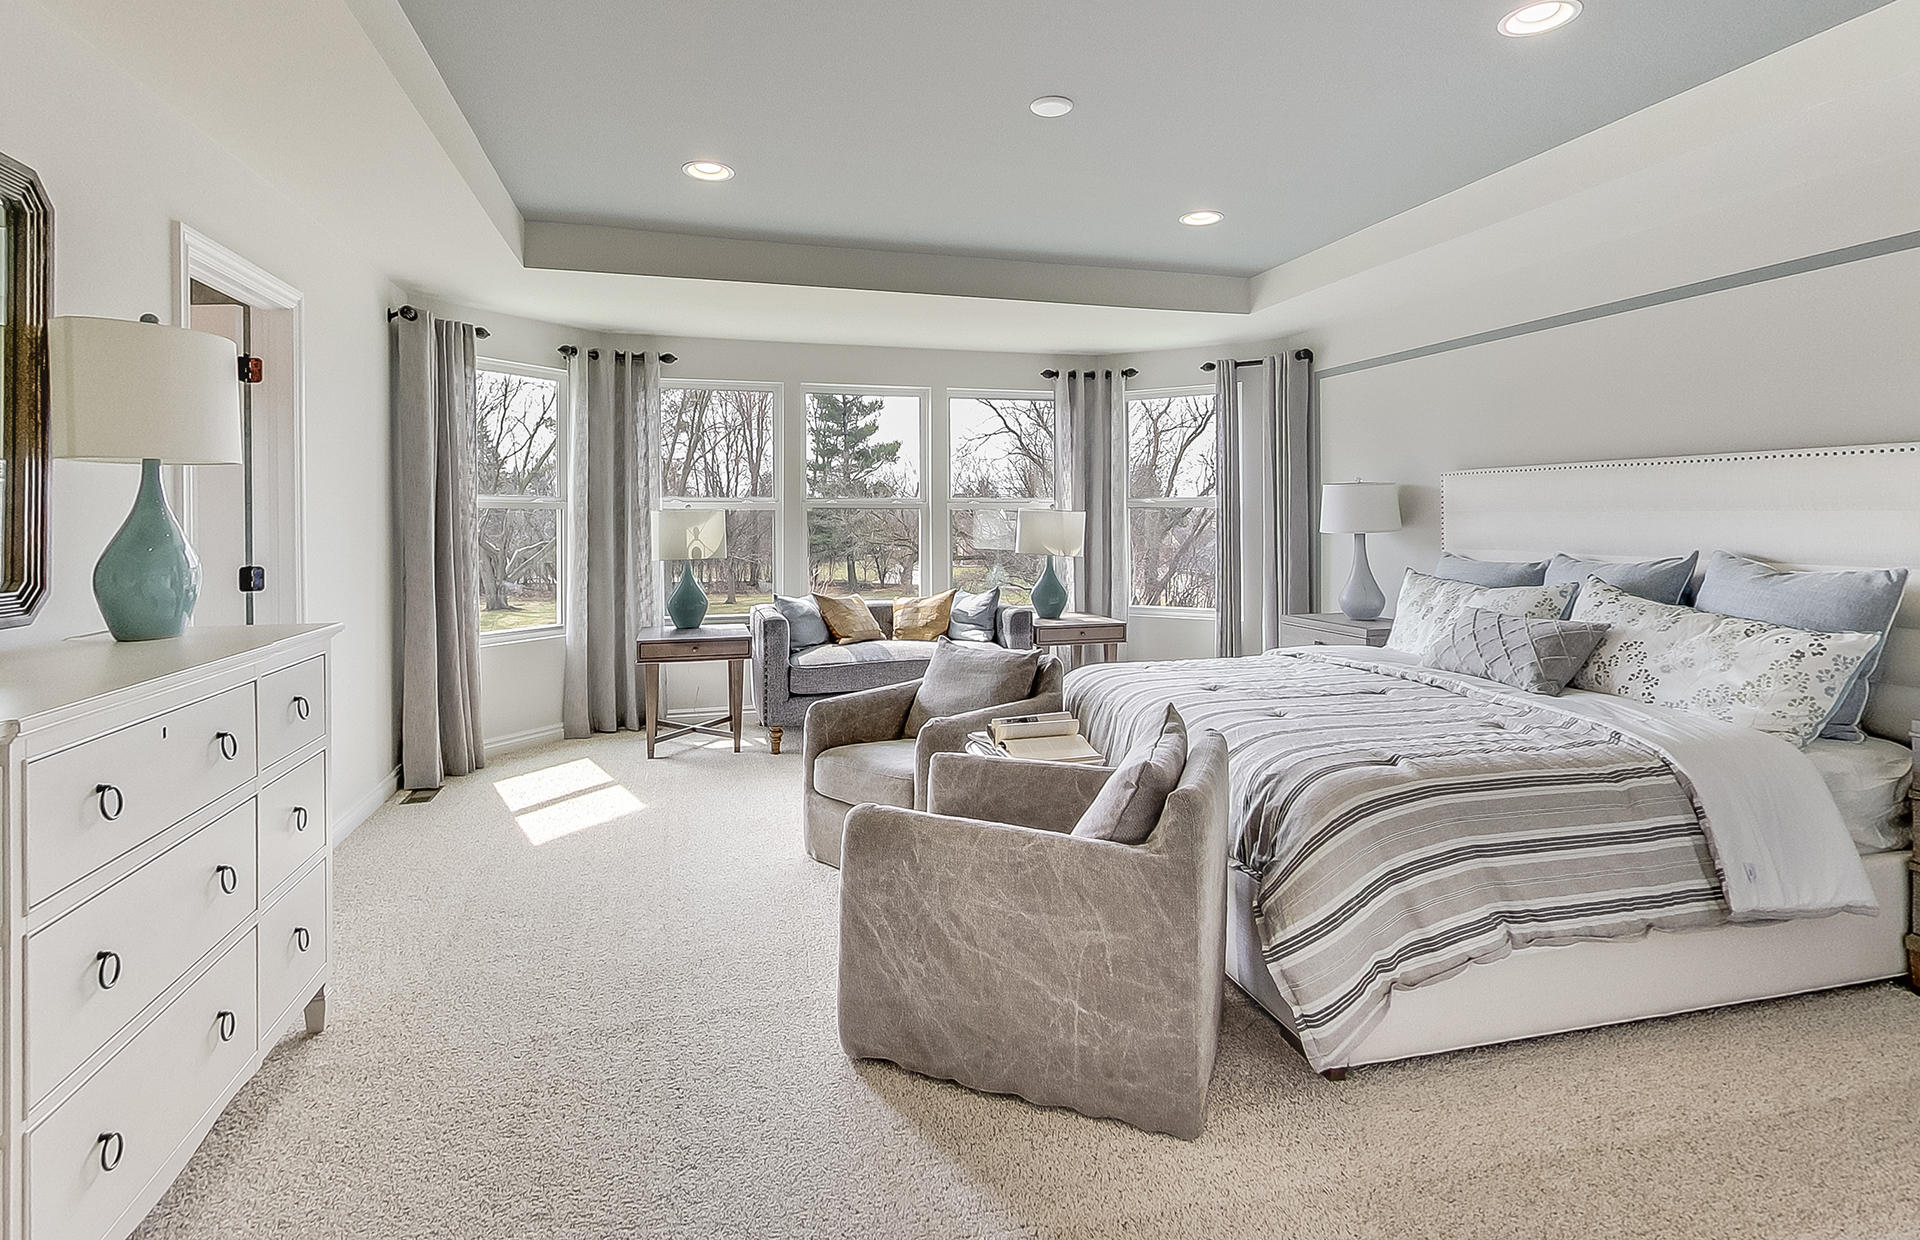 Rathmor Park by Pulte Homes image 2